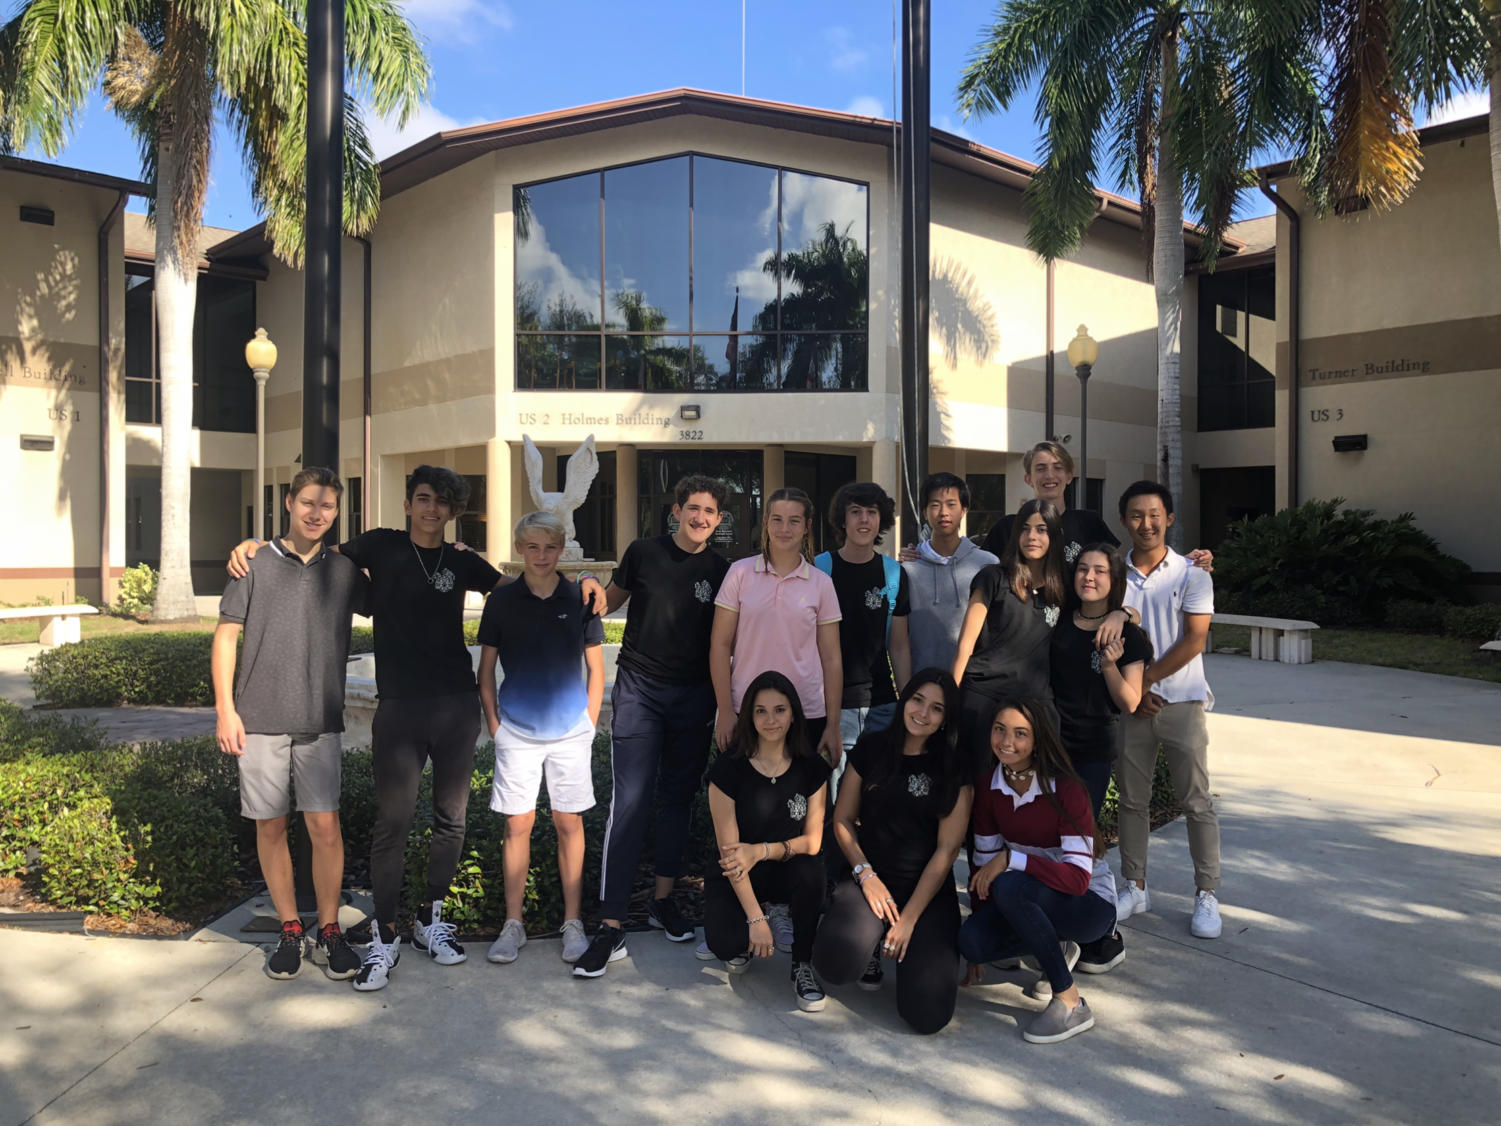 Exchange+and+Host+students+pose+together+for+one+final+picture+in+the+Palm+Courtyard